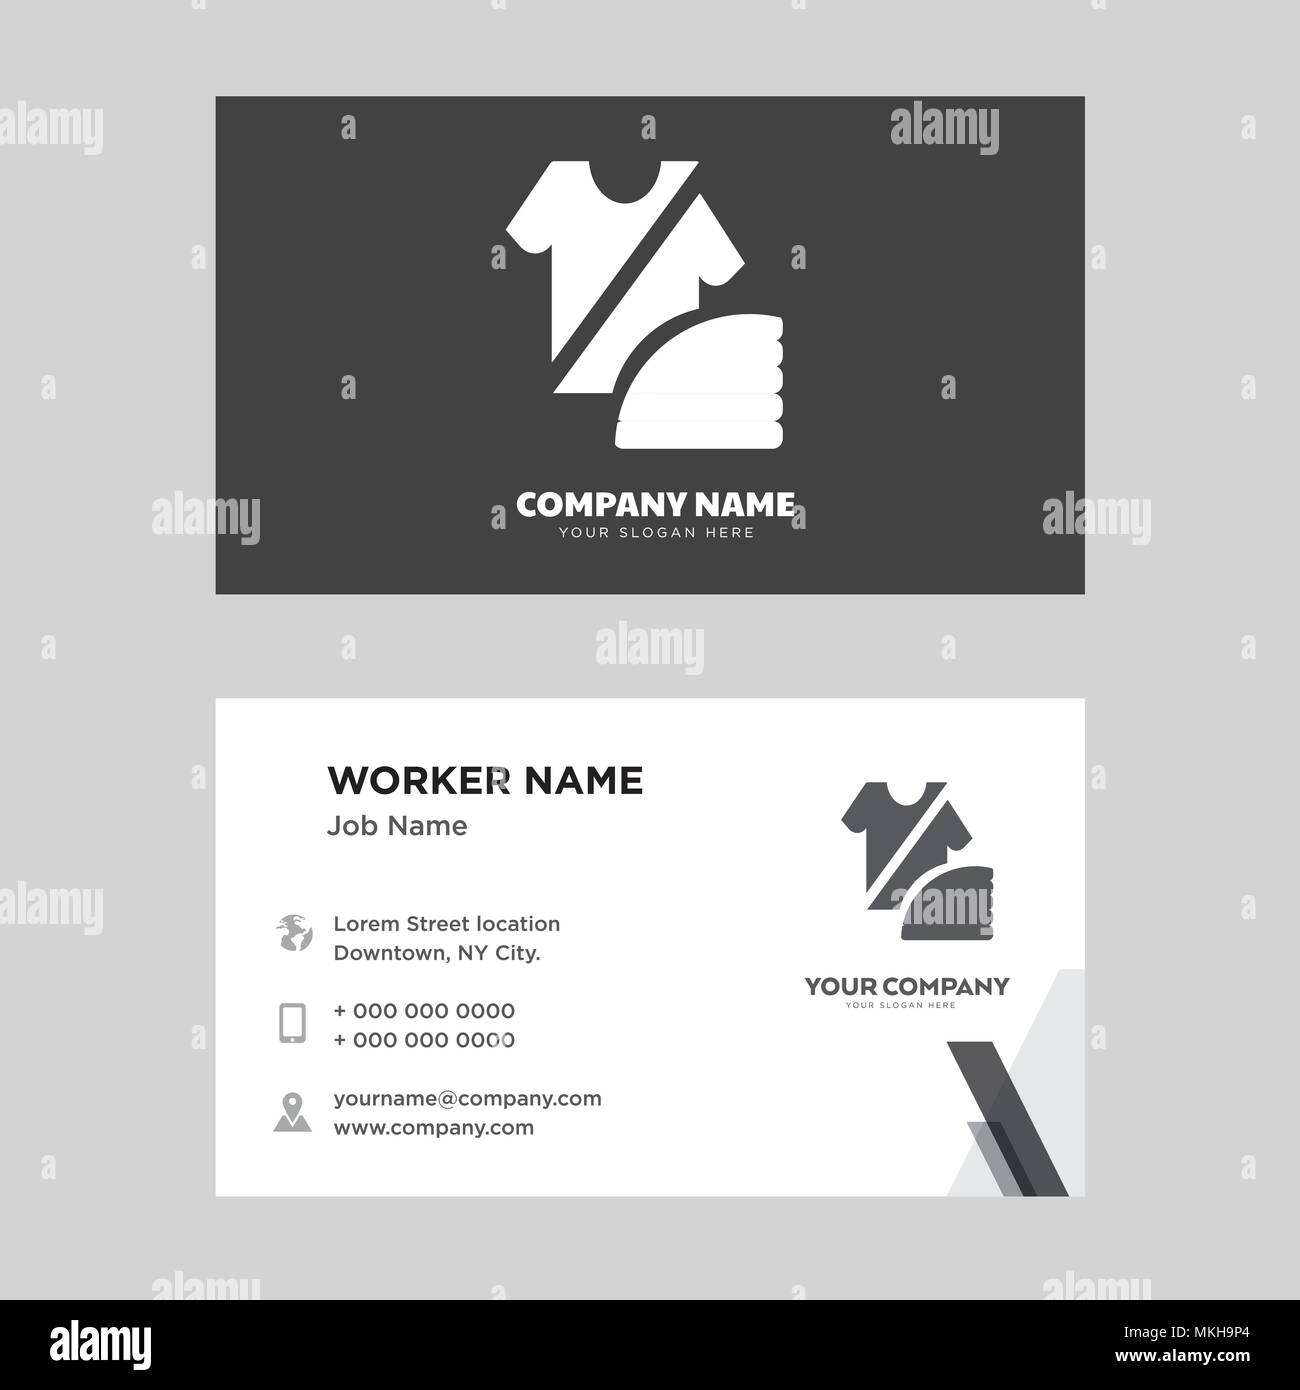 Fashion Business Card Design Template Visiting For Your Company Modern Horizontal Identity Card Vector Stock Vector Image Art Alamy